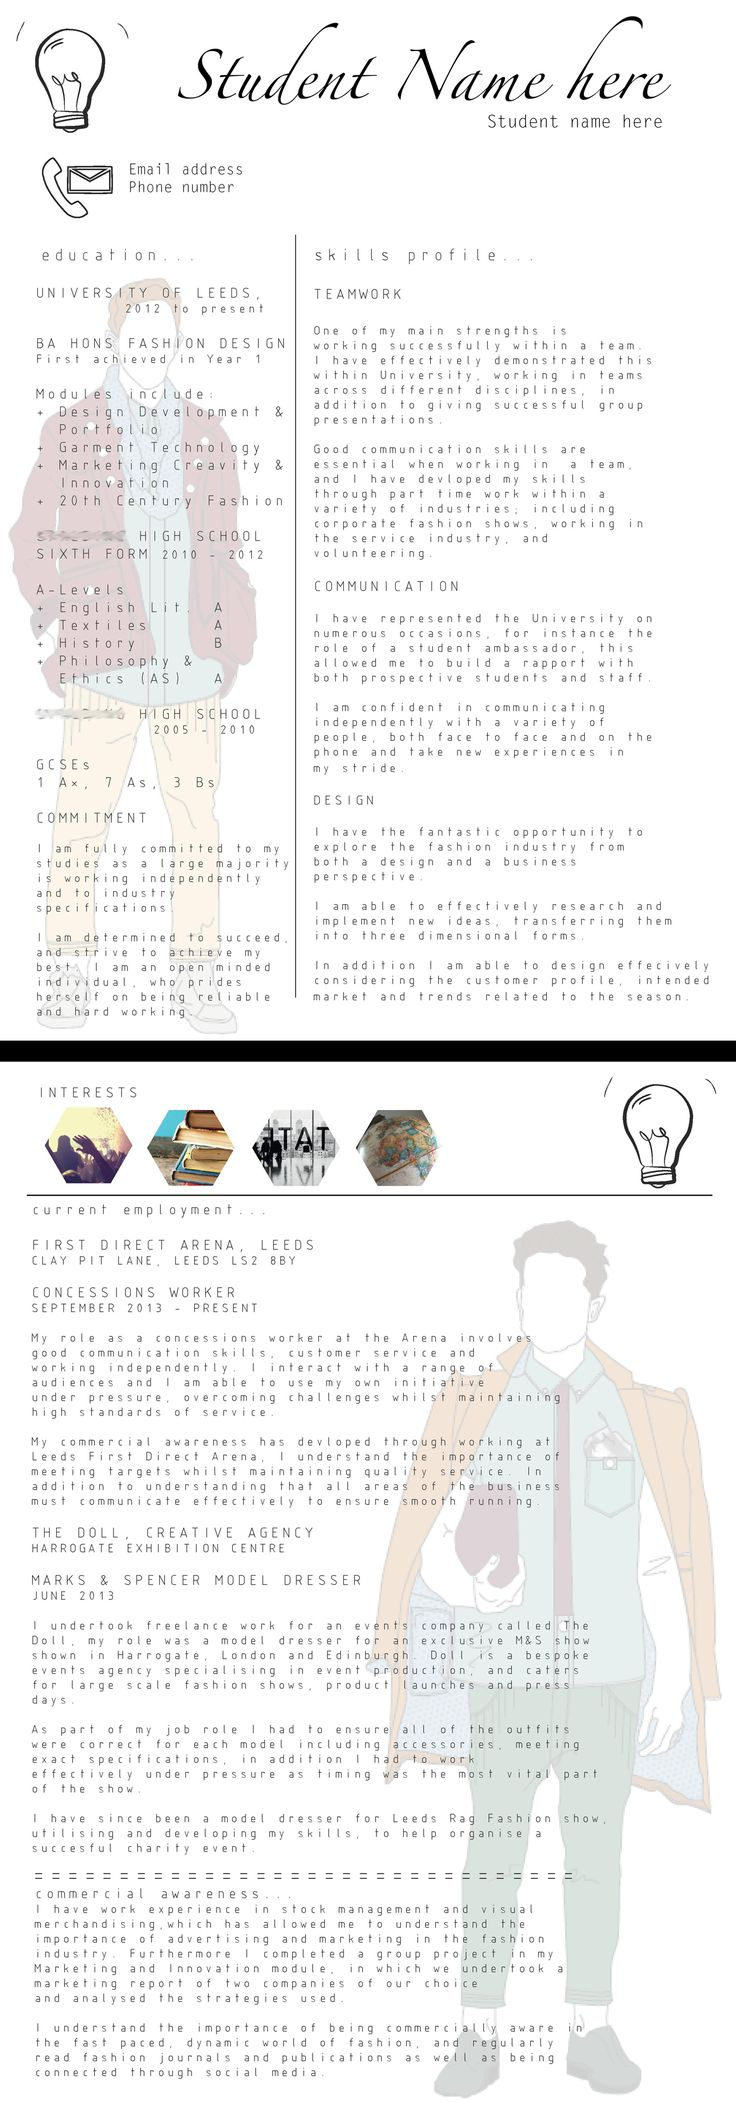 best ideas about cv example exemple de cv simple great 2 page creative cv example from one of our fashion design students